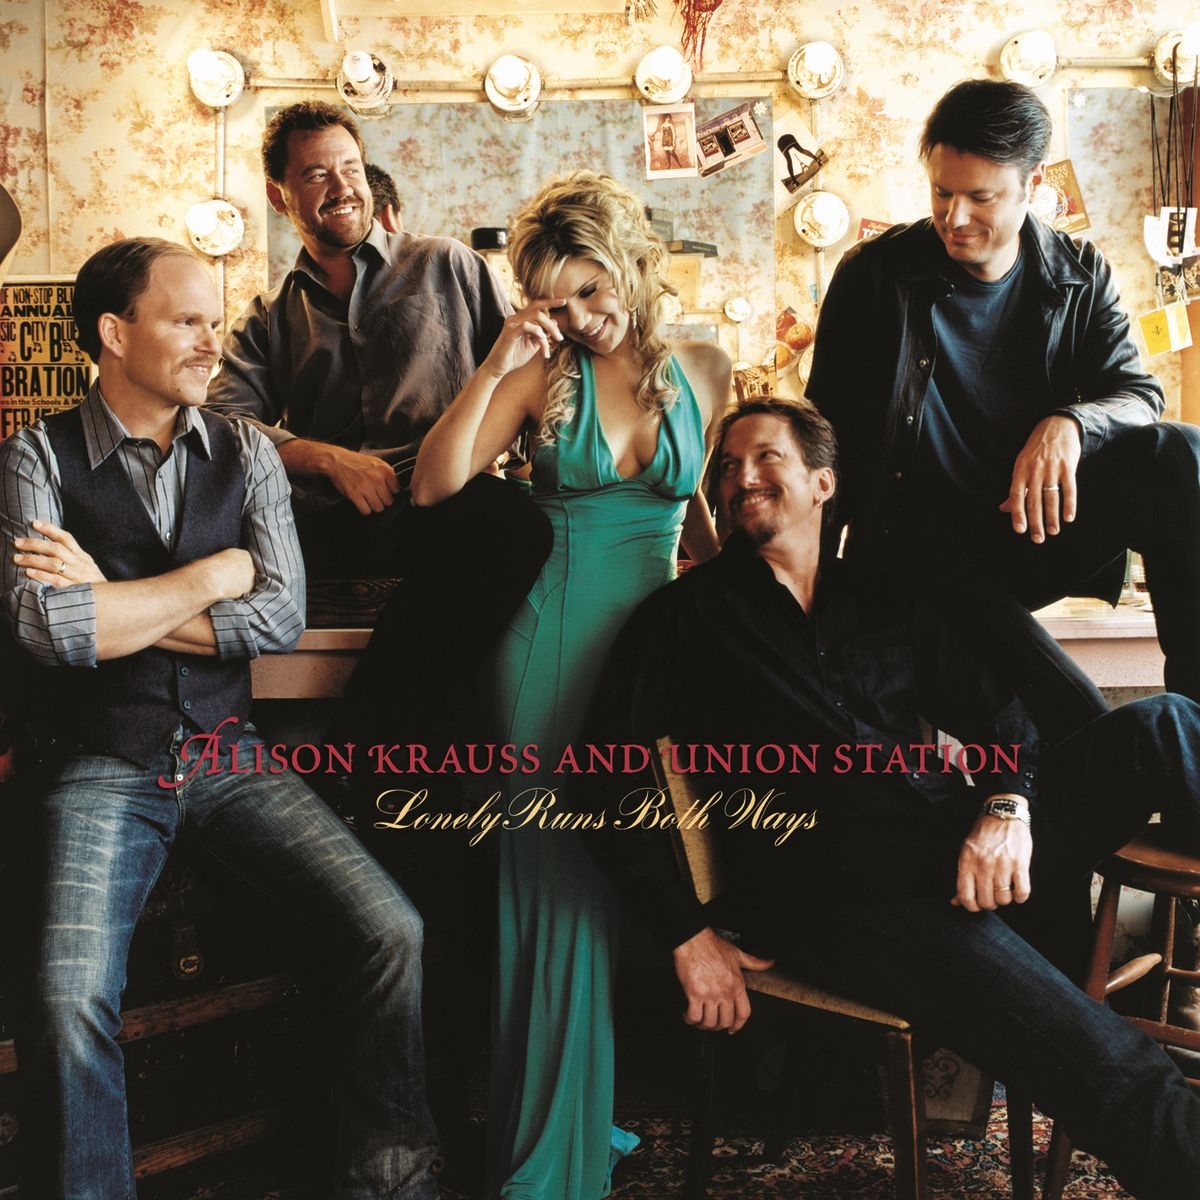 Alison Krauss - Lonely Runs Both Ways album cover